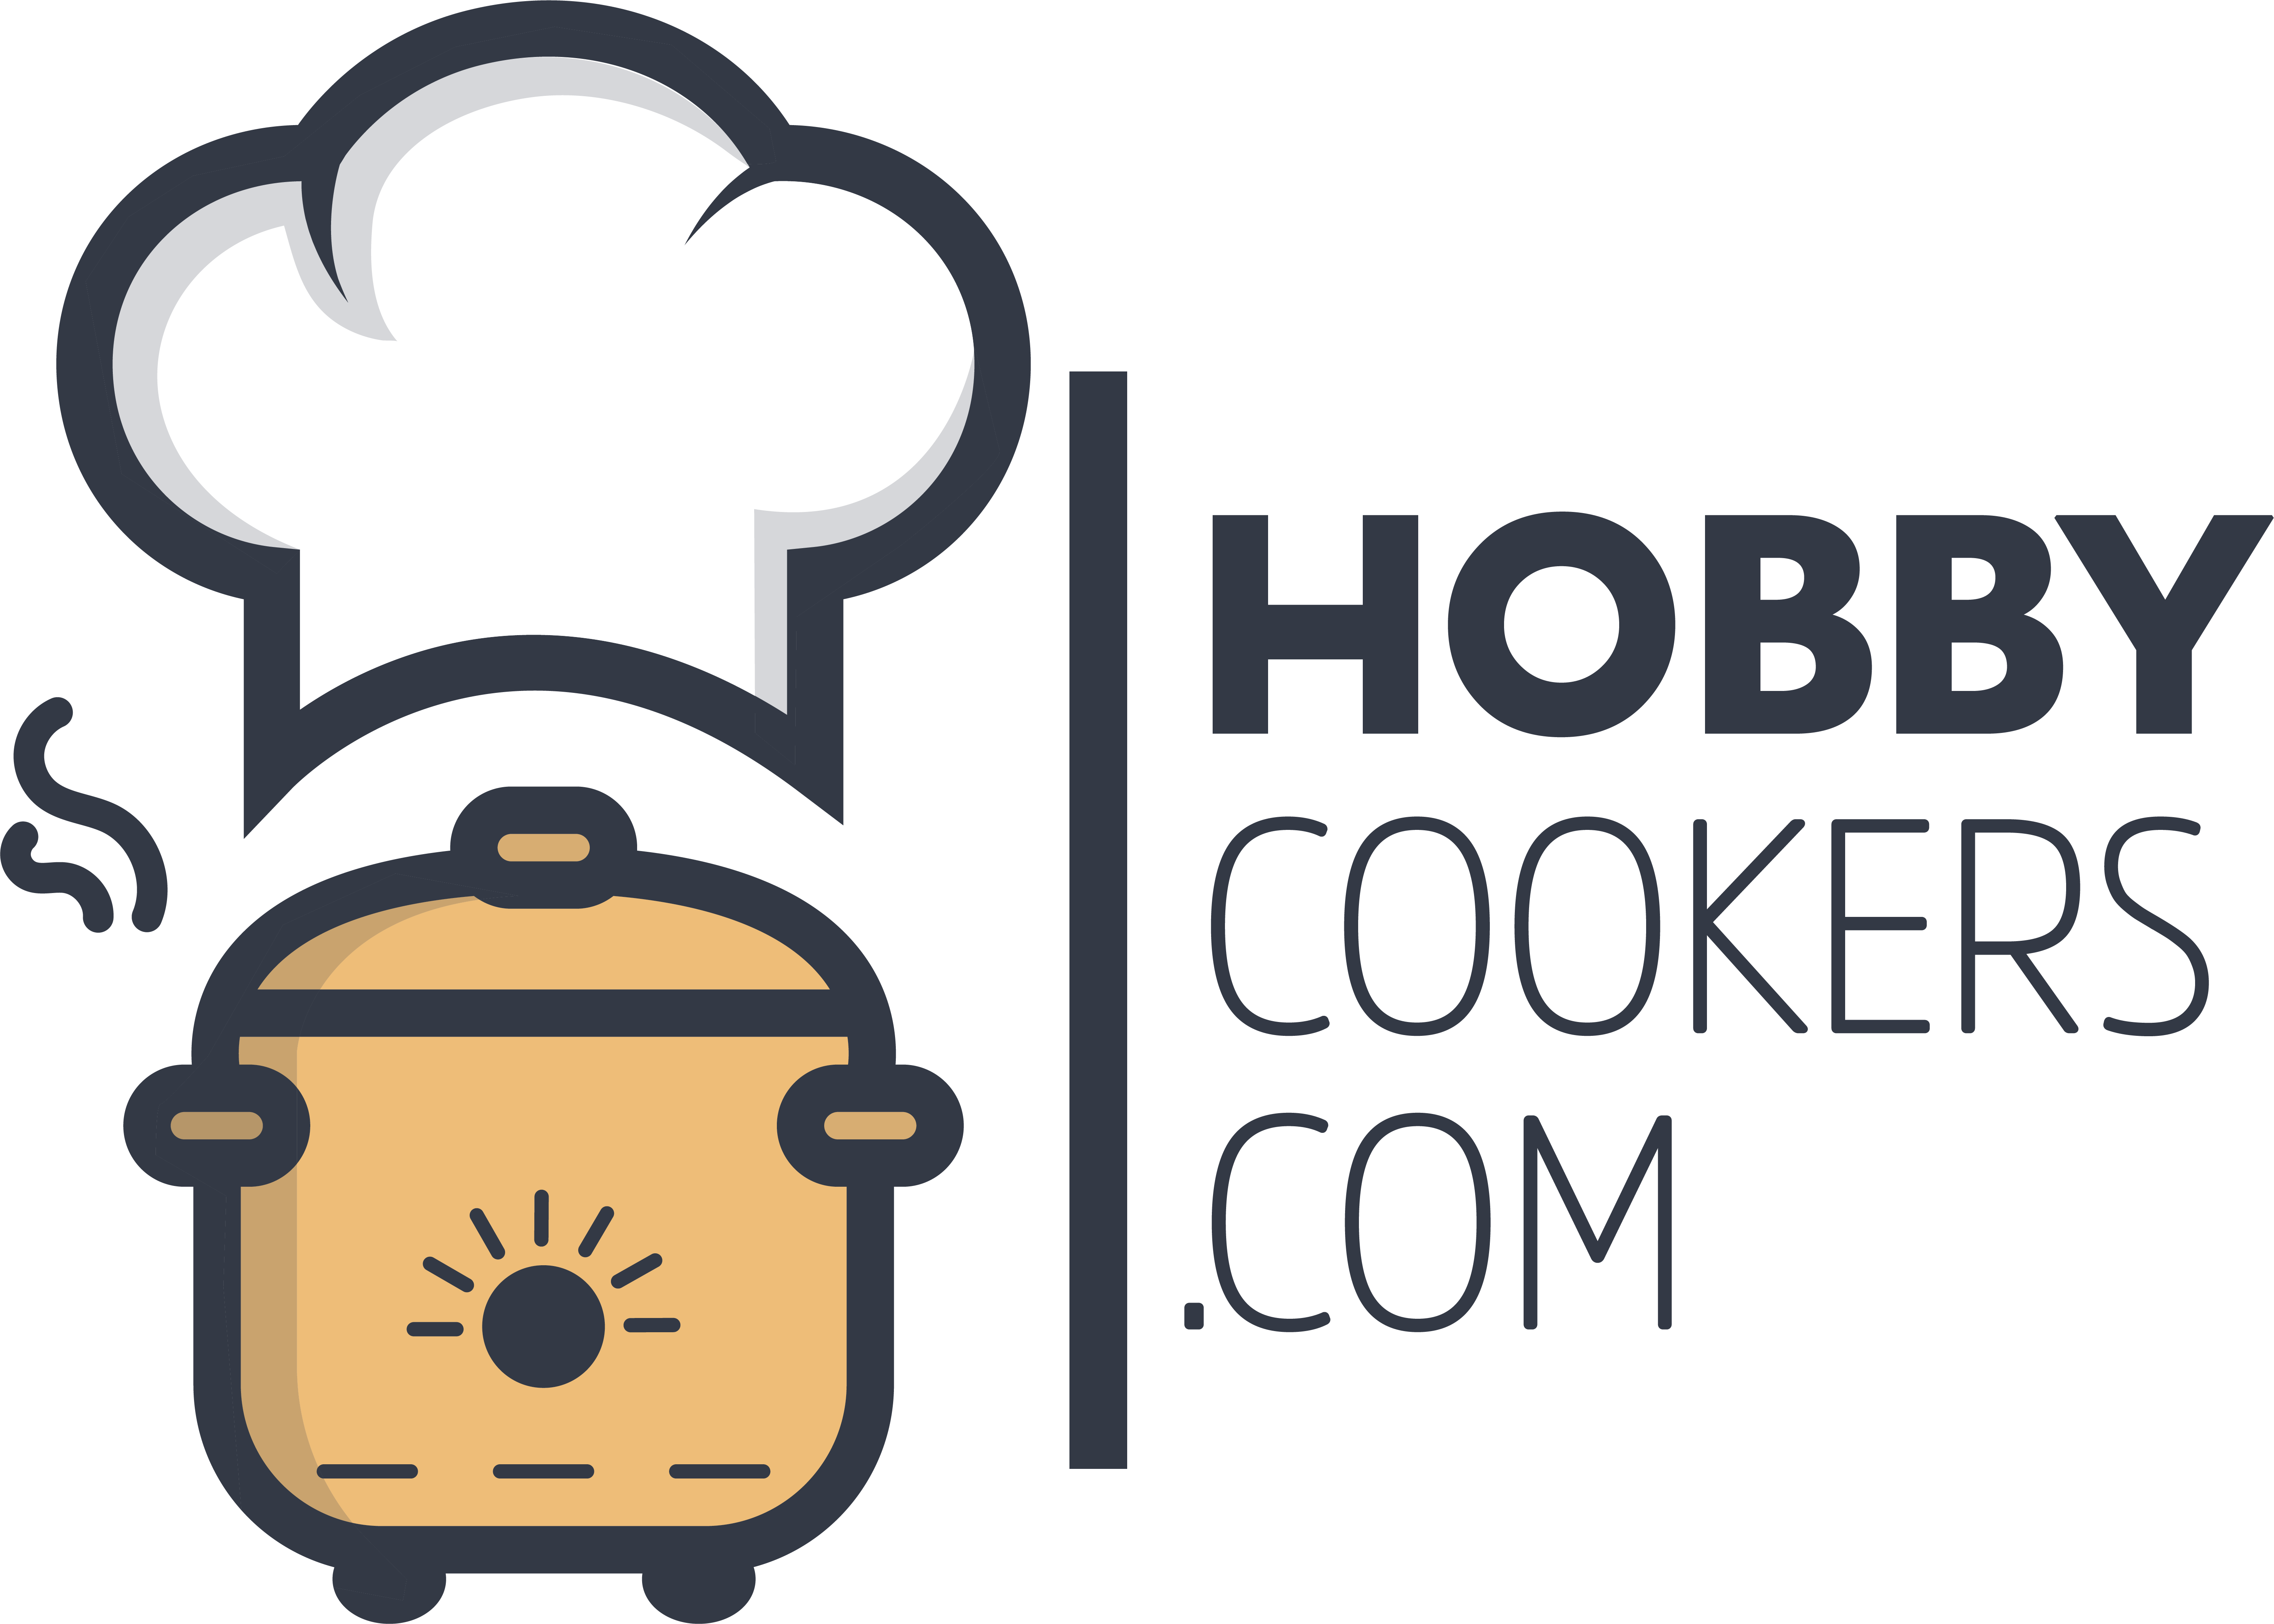 Hobby Cookers Logo